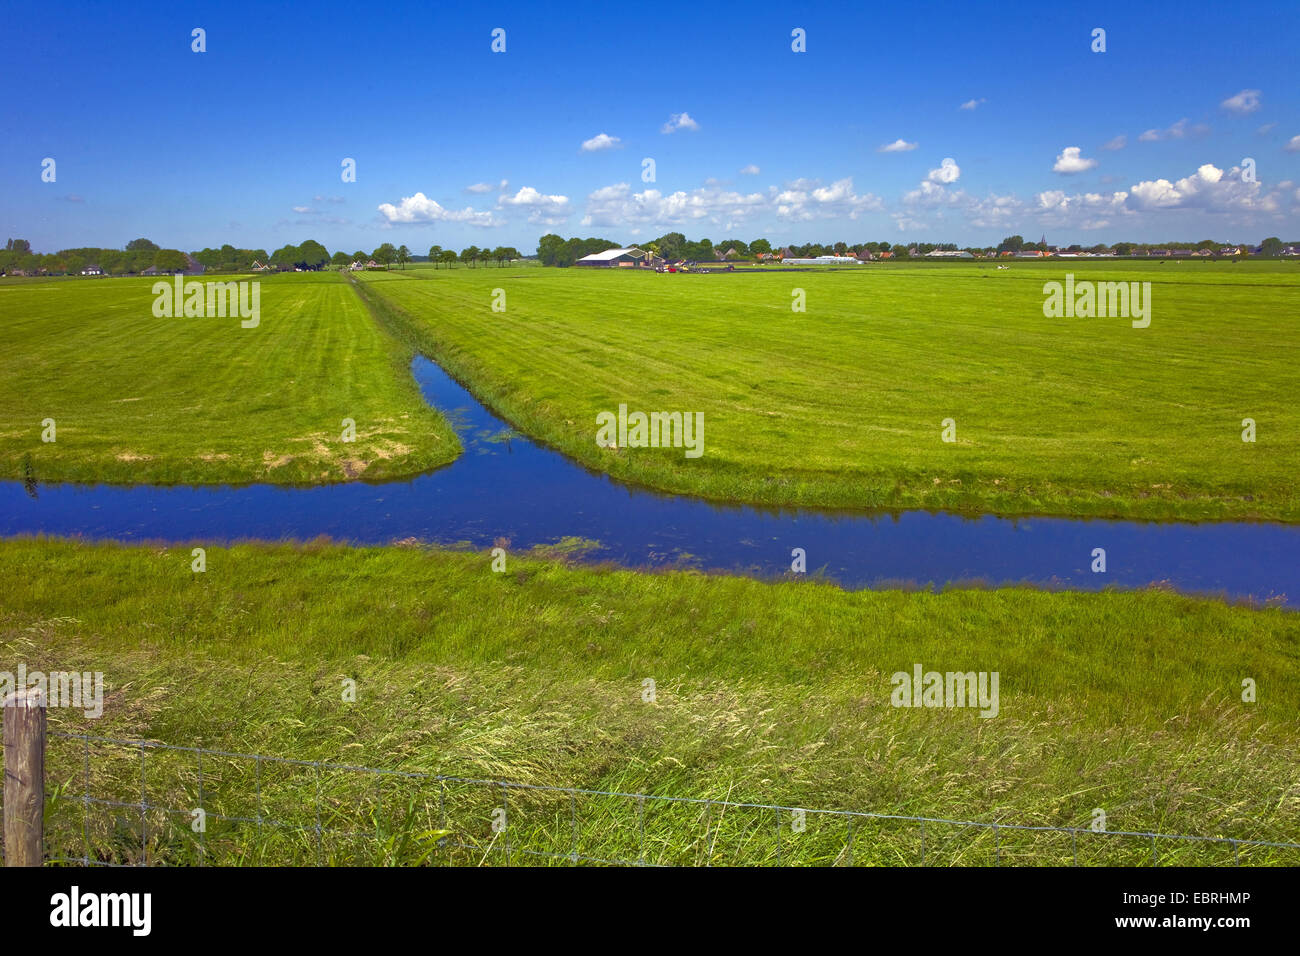 pastures and ditches, Netherlands, Noord Holland, Enkhuizen - Stock Image